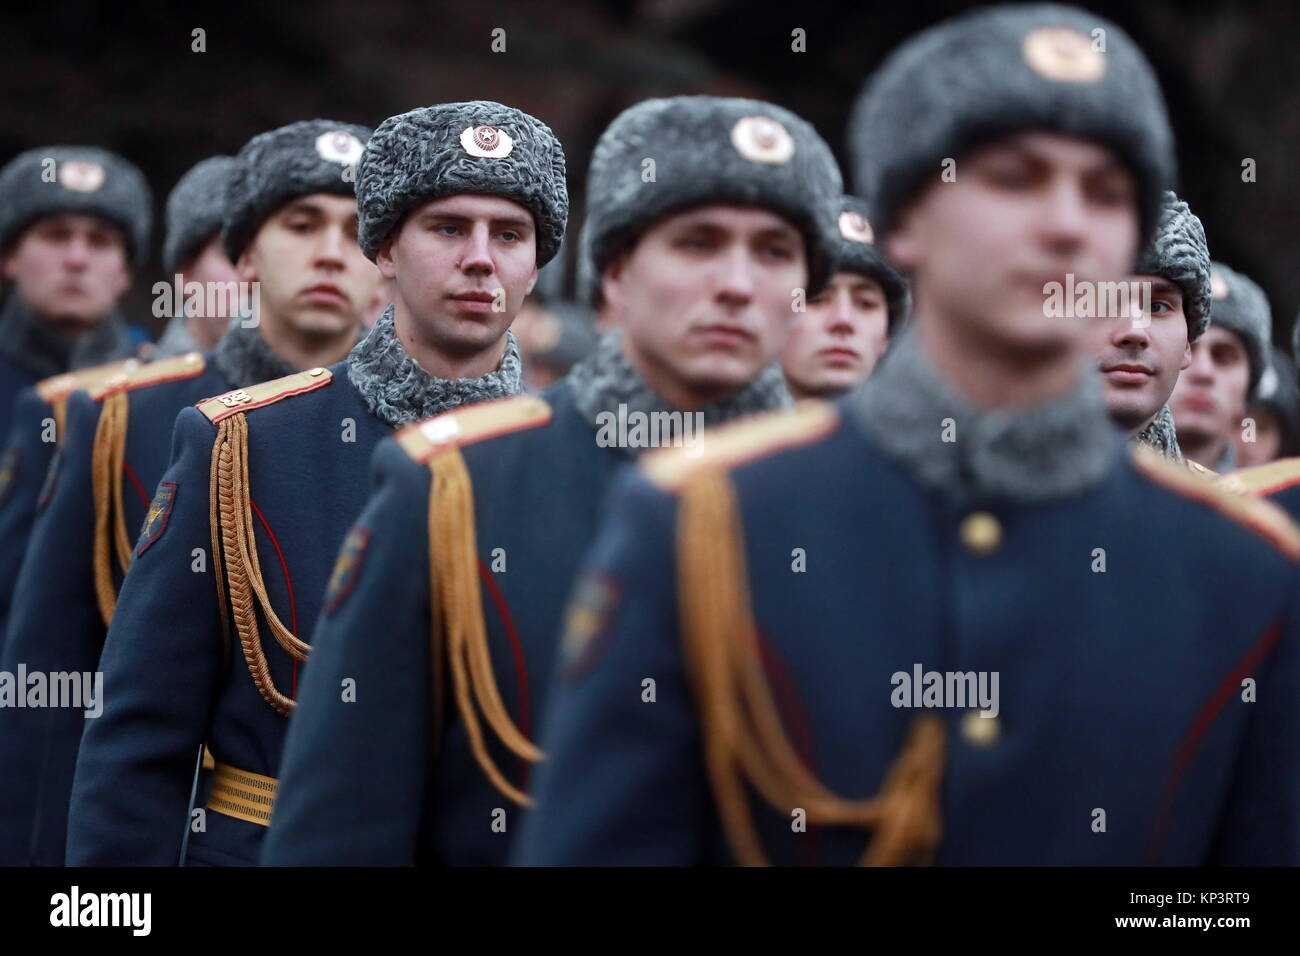 Moscow, Russia. 13th Dec, 2017. Servicemen attend a ceremony to unveil a monument to 'Chernobyl liquidators', - Stock Image